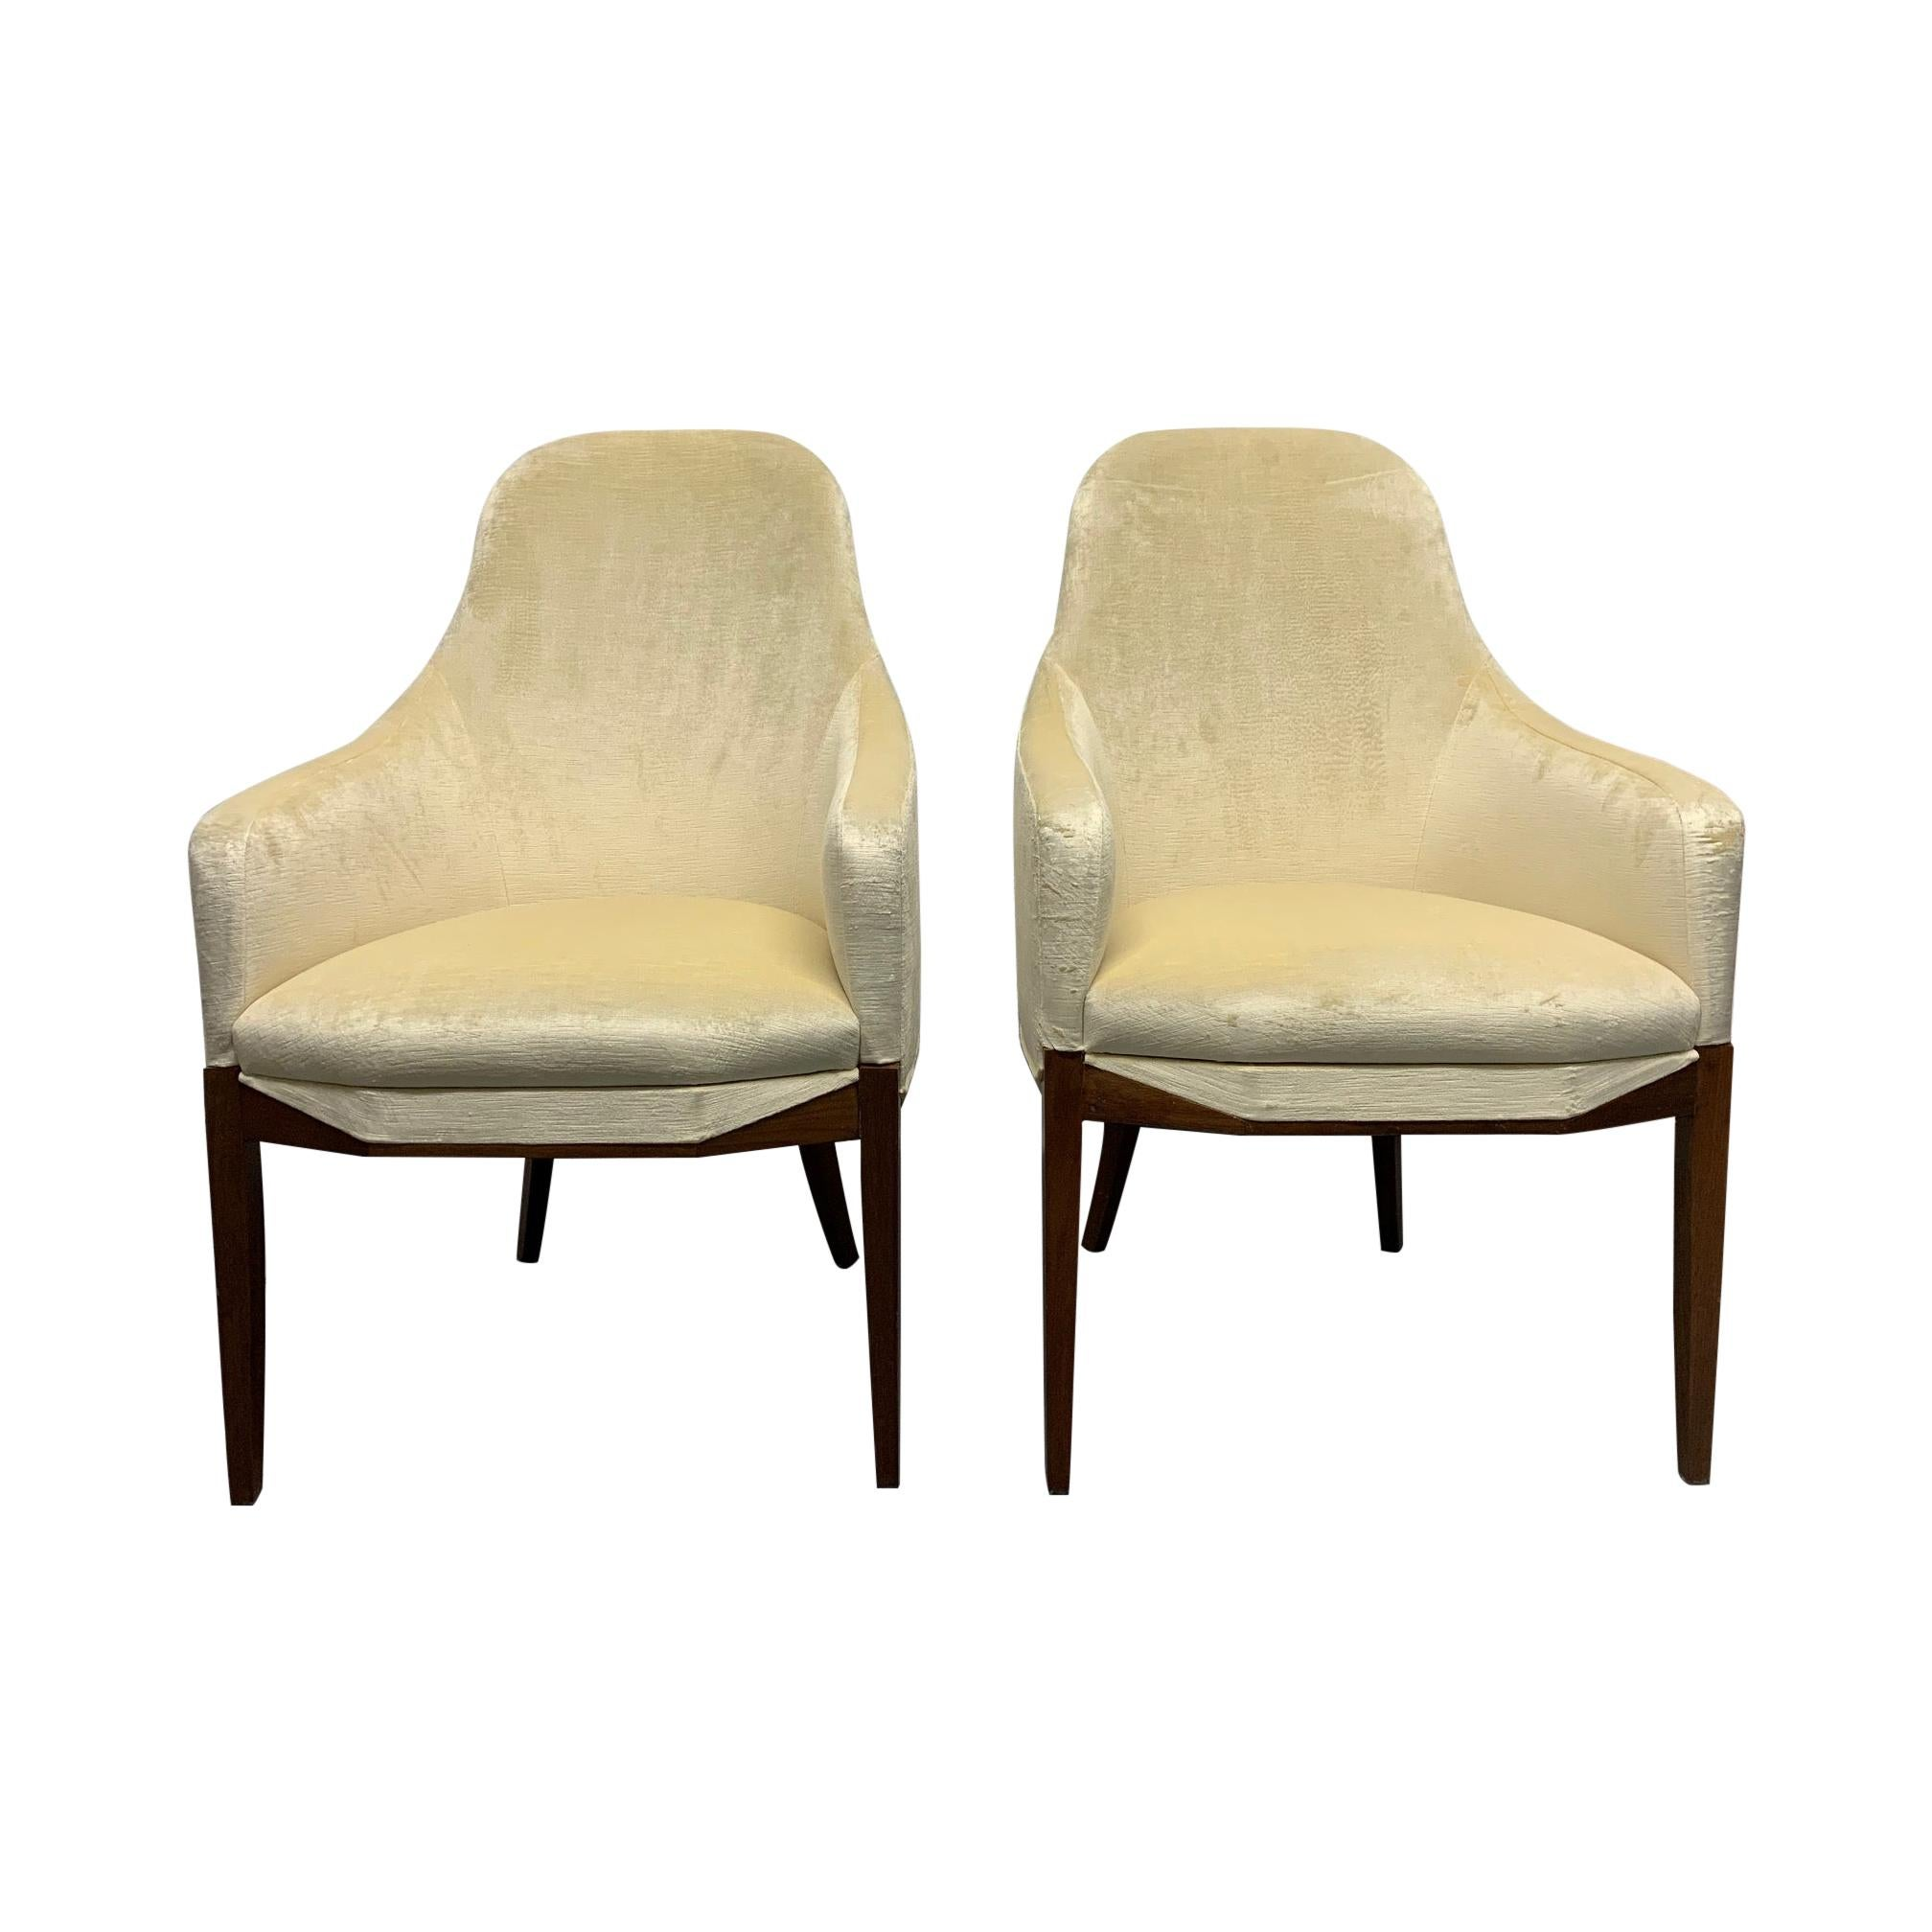 Pair of Art Deco Walnut Side Chairs in Mohair